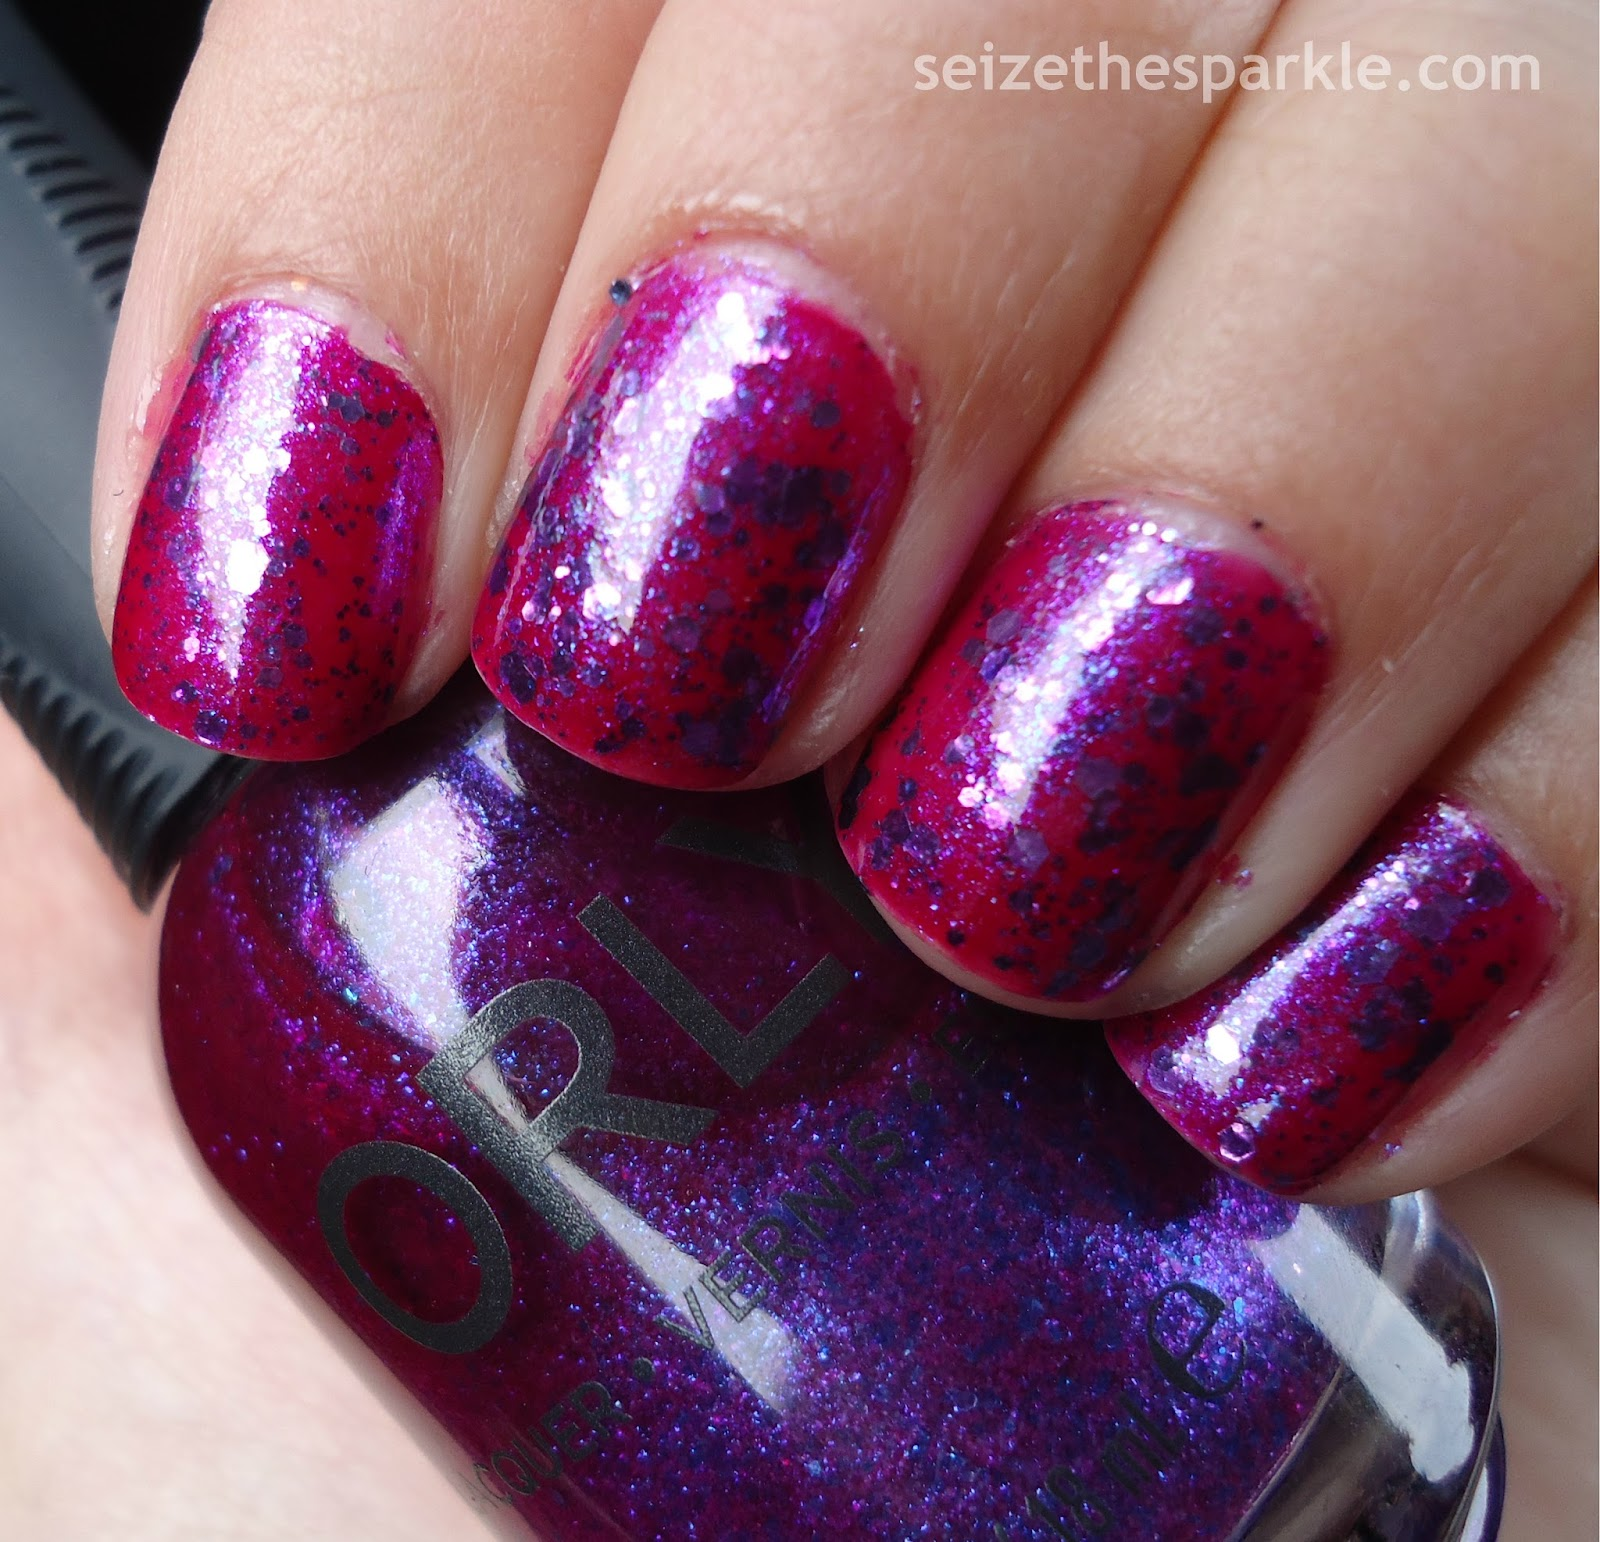 Orly Purple Poodle Jelly Glitter Sandwich